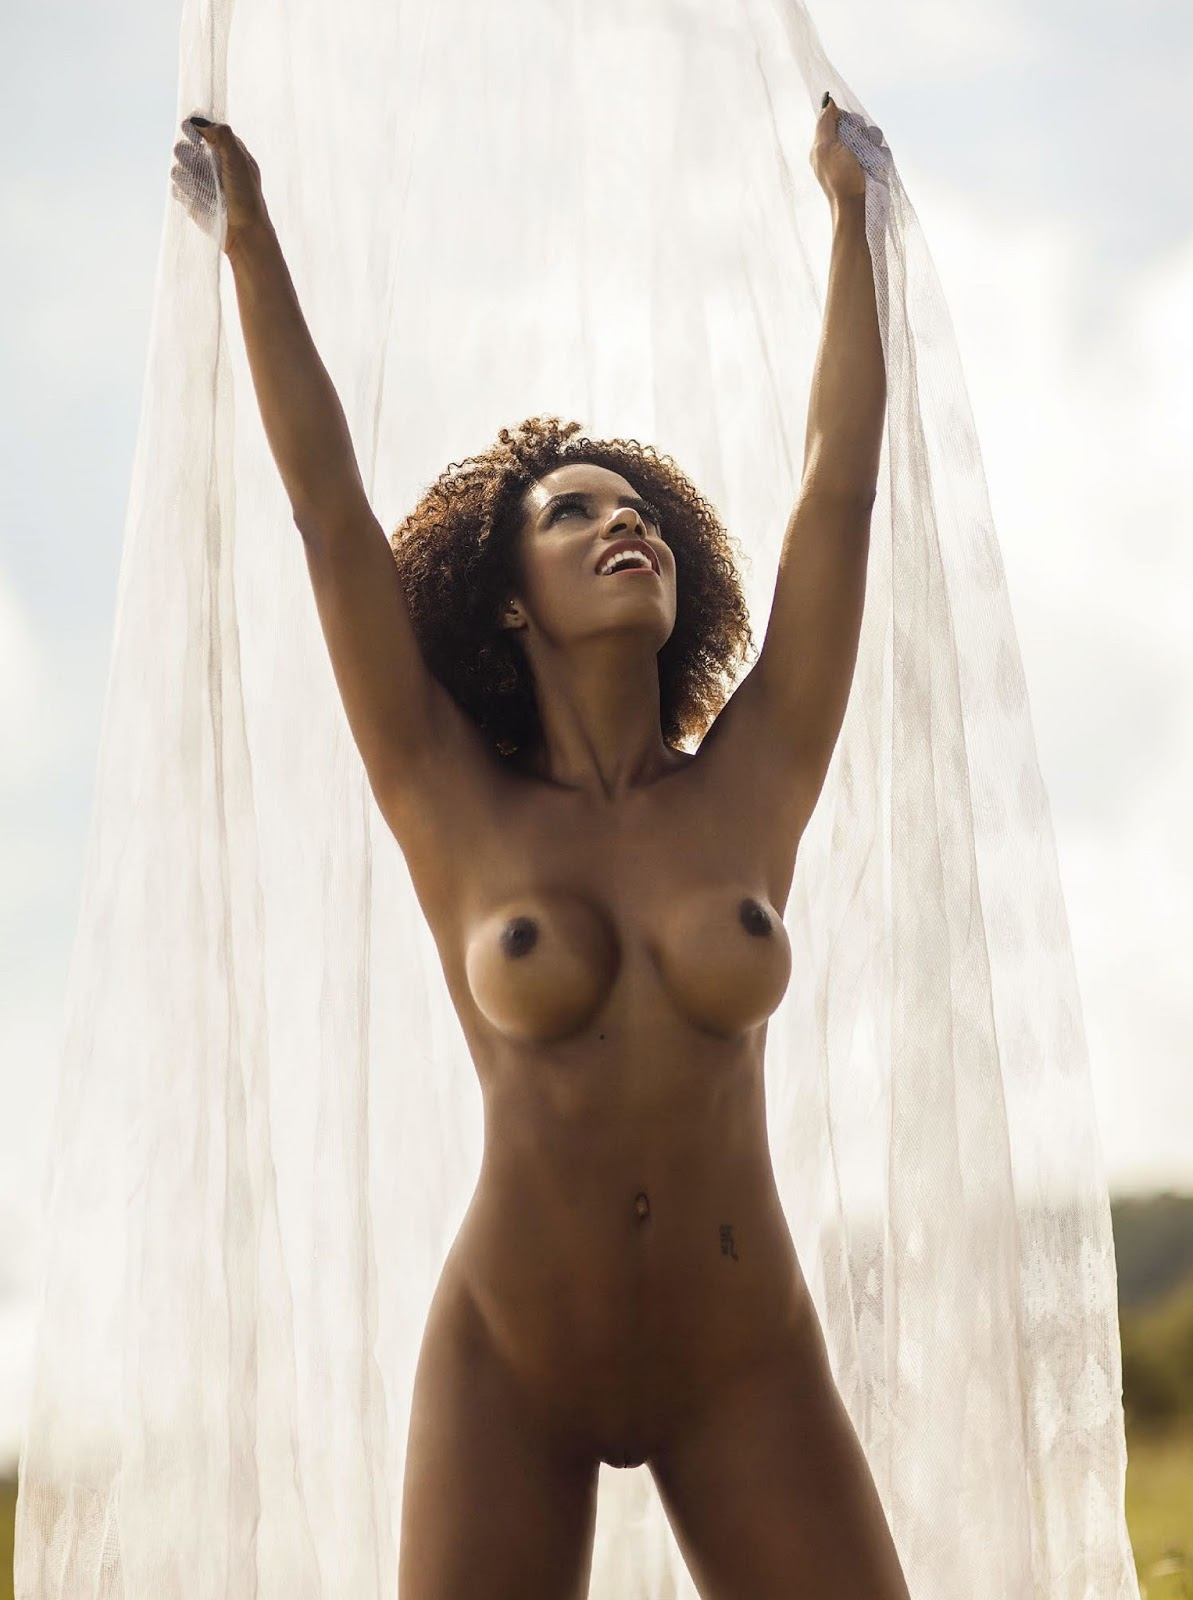 Ivi Pizzott On The Cover Of Playboy Magazine (NSFW ...